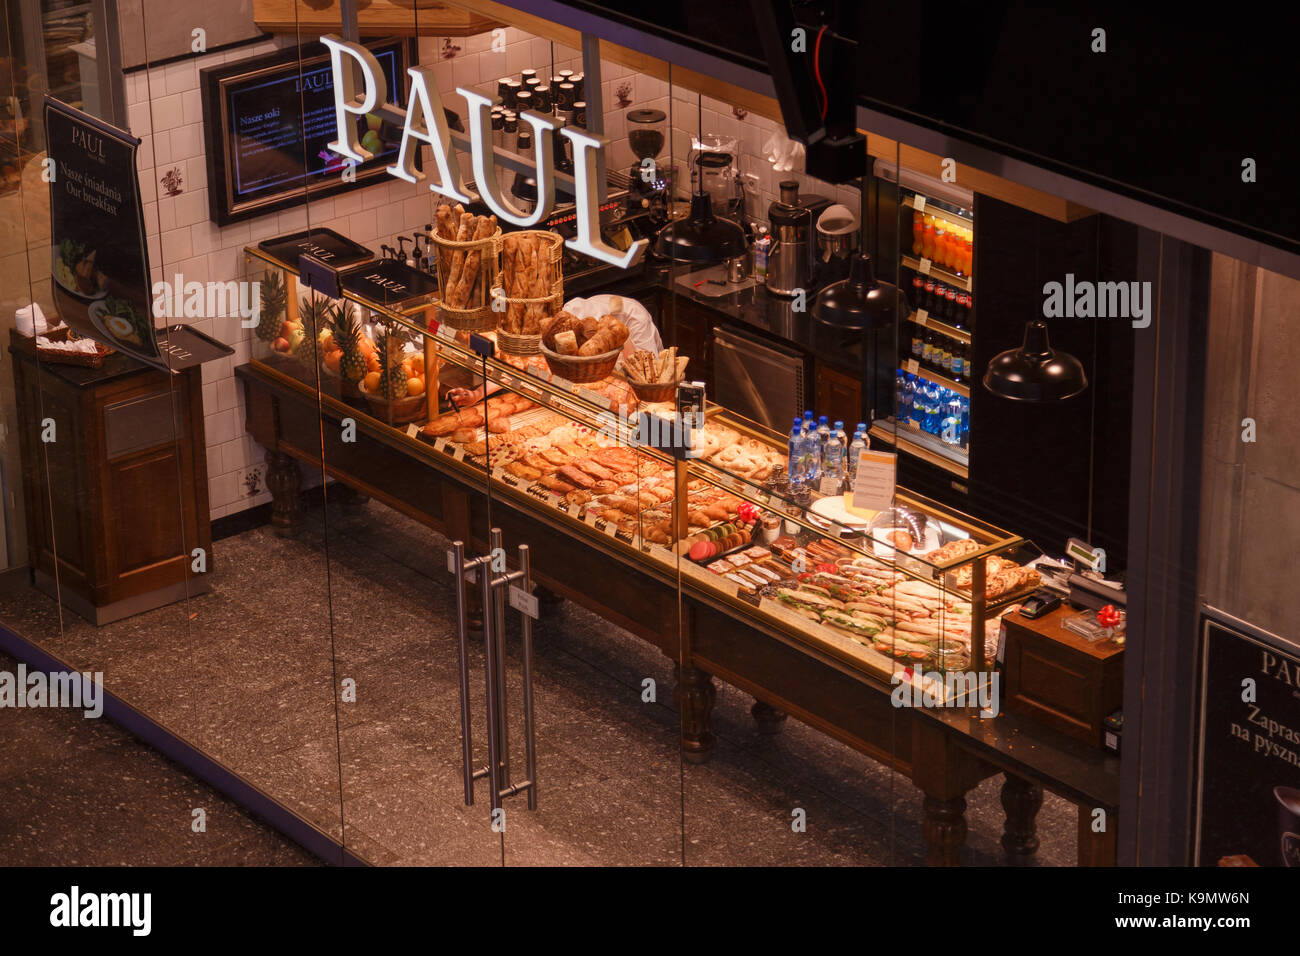 WARSAW, POLAND - SEPTEMBER 17, 2017: Pastry traditional francian backery Paul at the central railway station - Stock Image